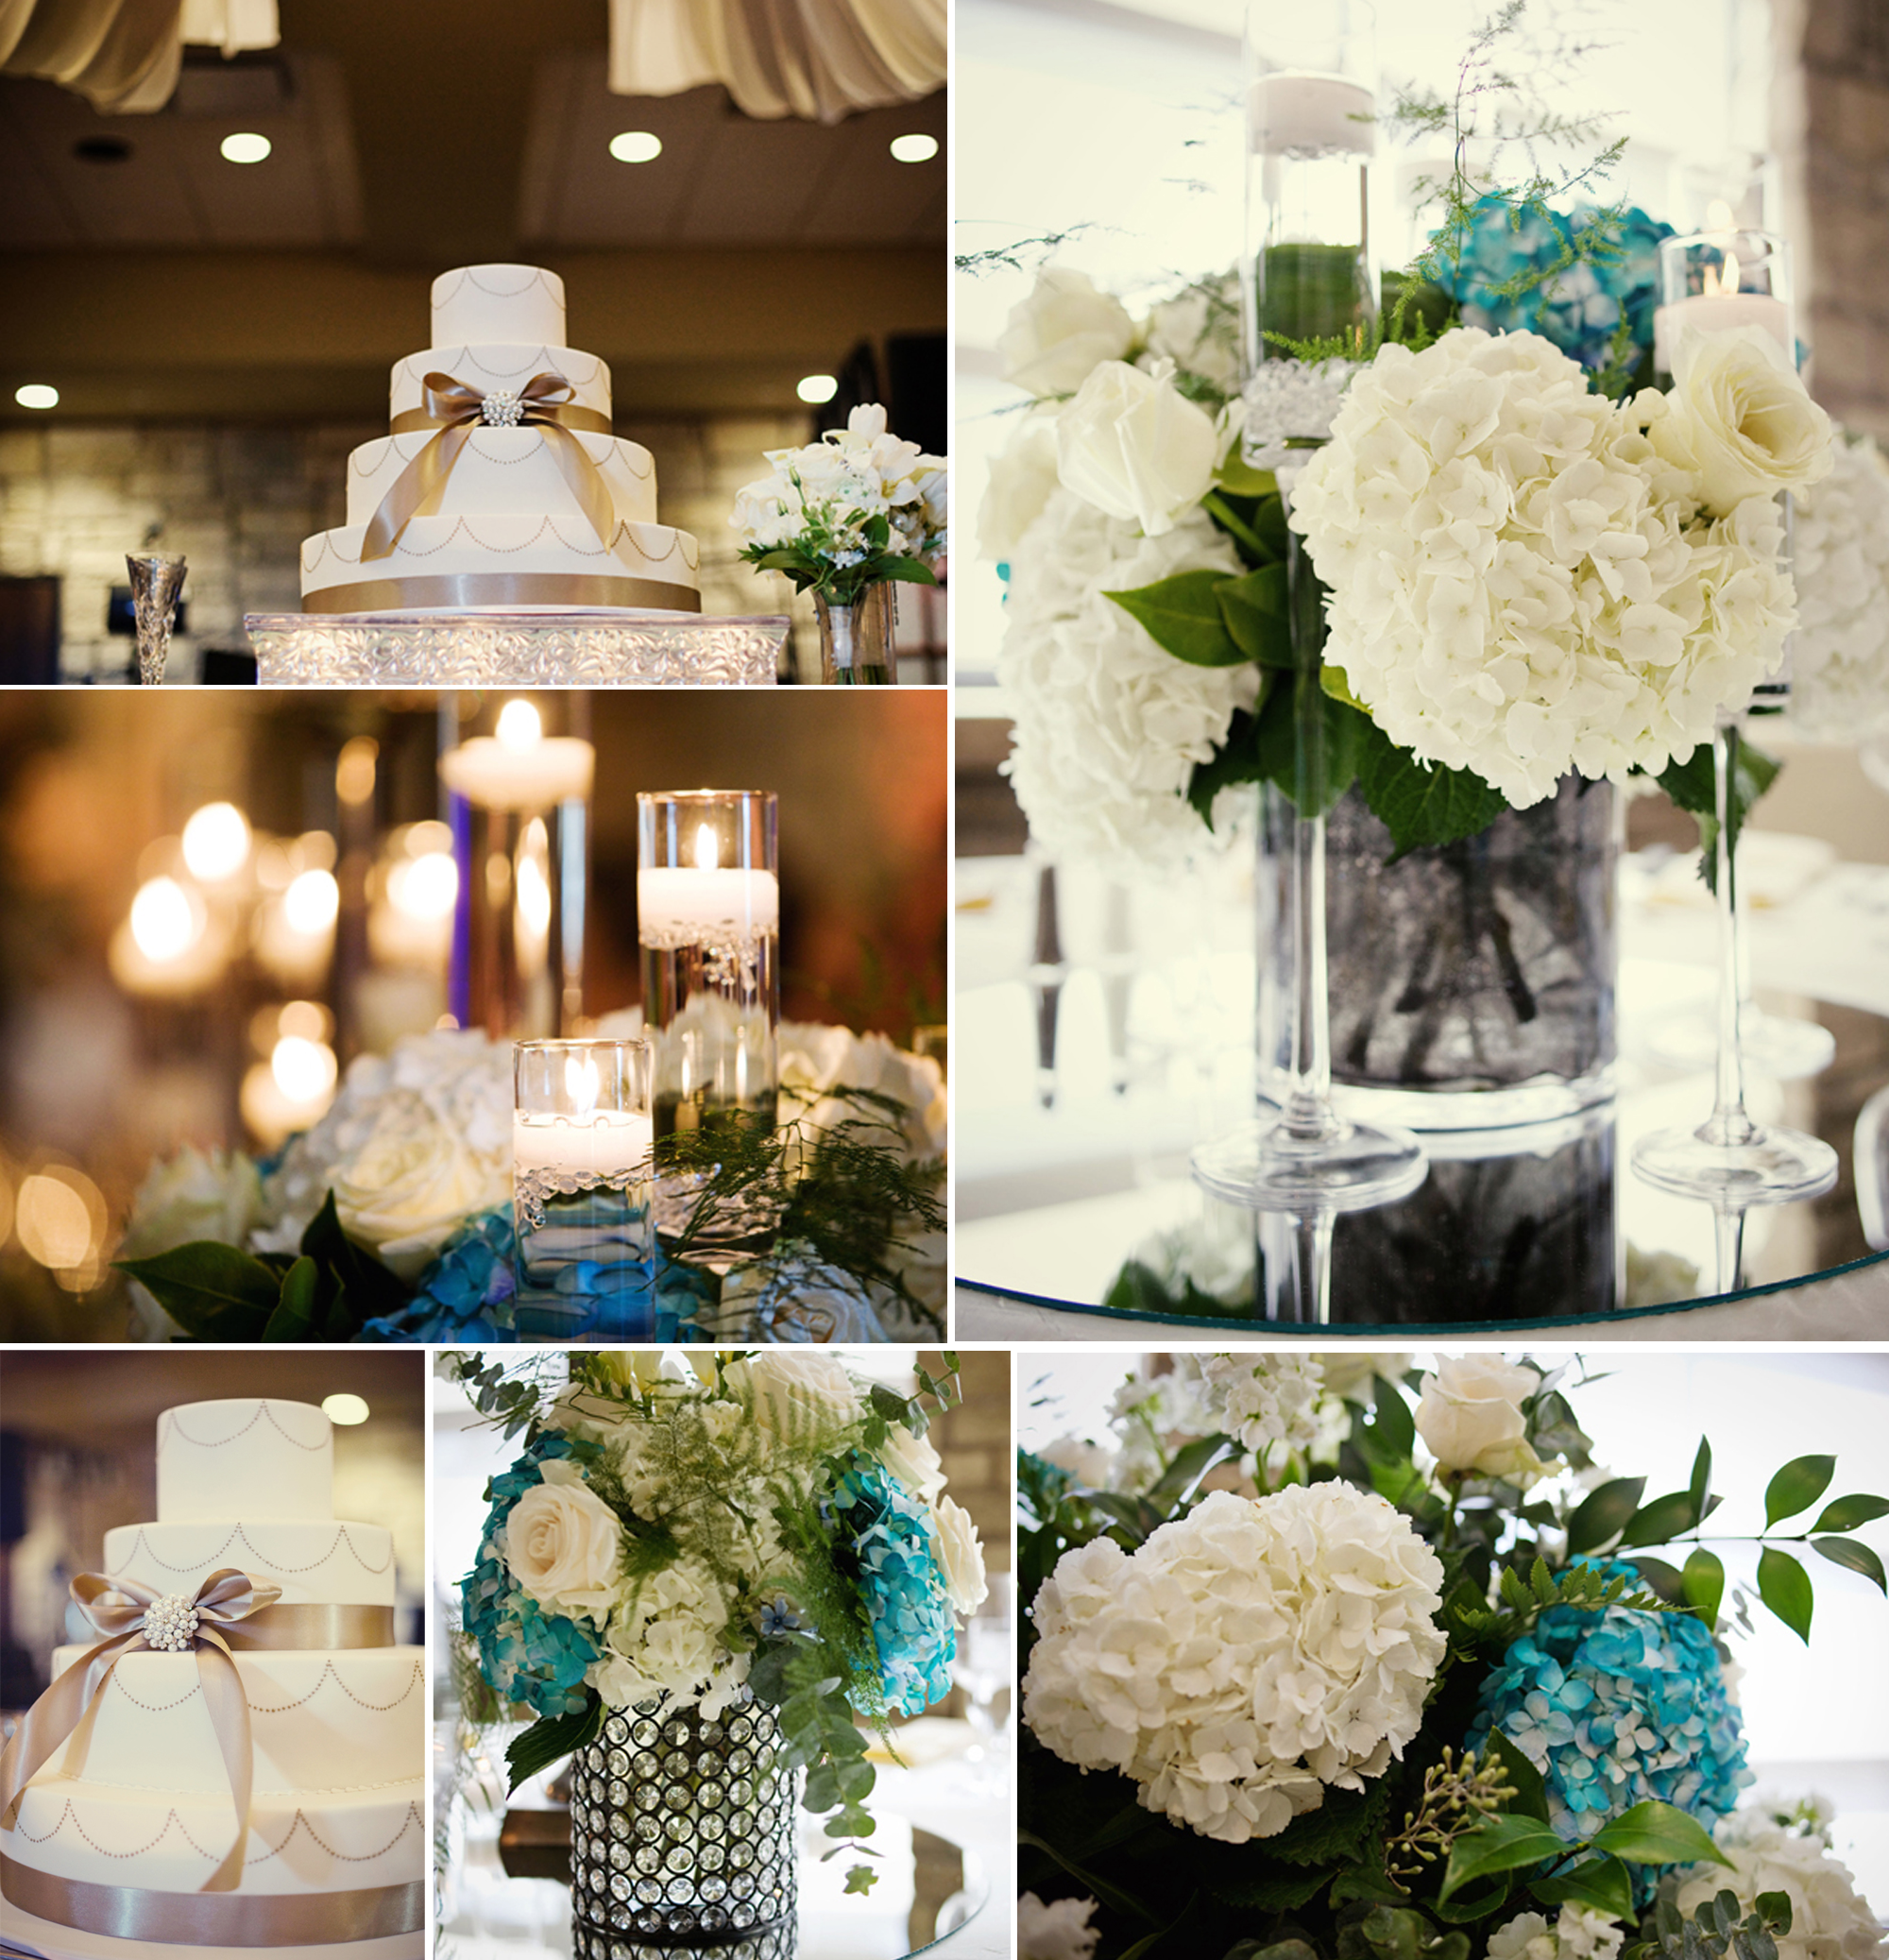 Elegant wedding centerpieces - Wedding Reception Centerpieces Elegant Ivory Cake Onewedcom